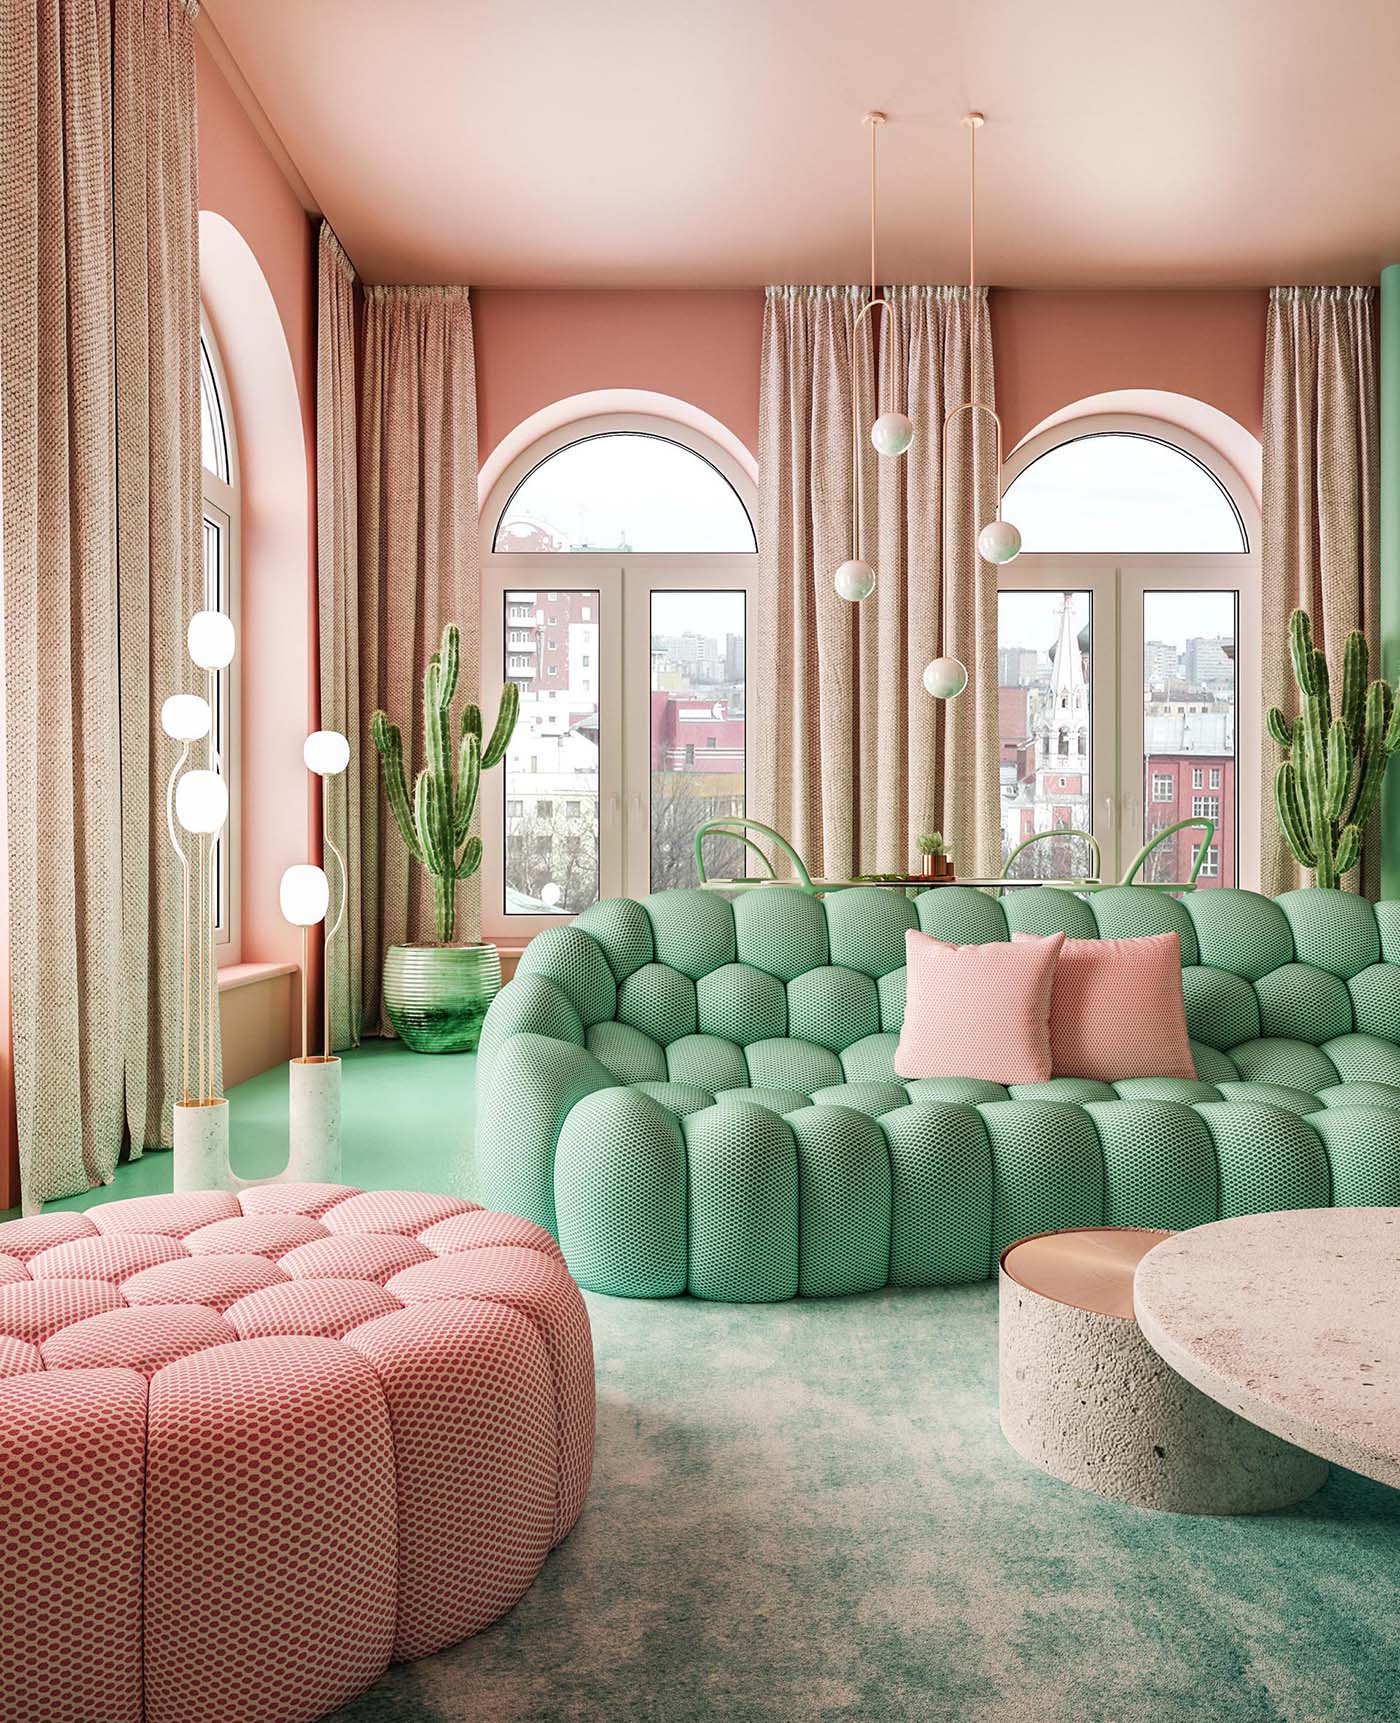 A pink and green living room with floor-to-ceiling curtains and an open floor plan.